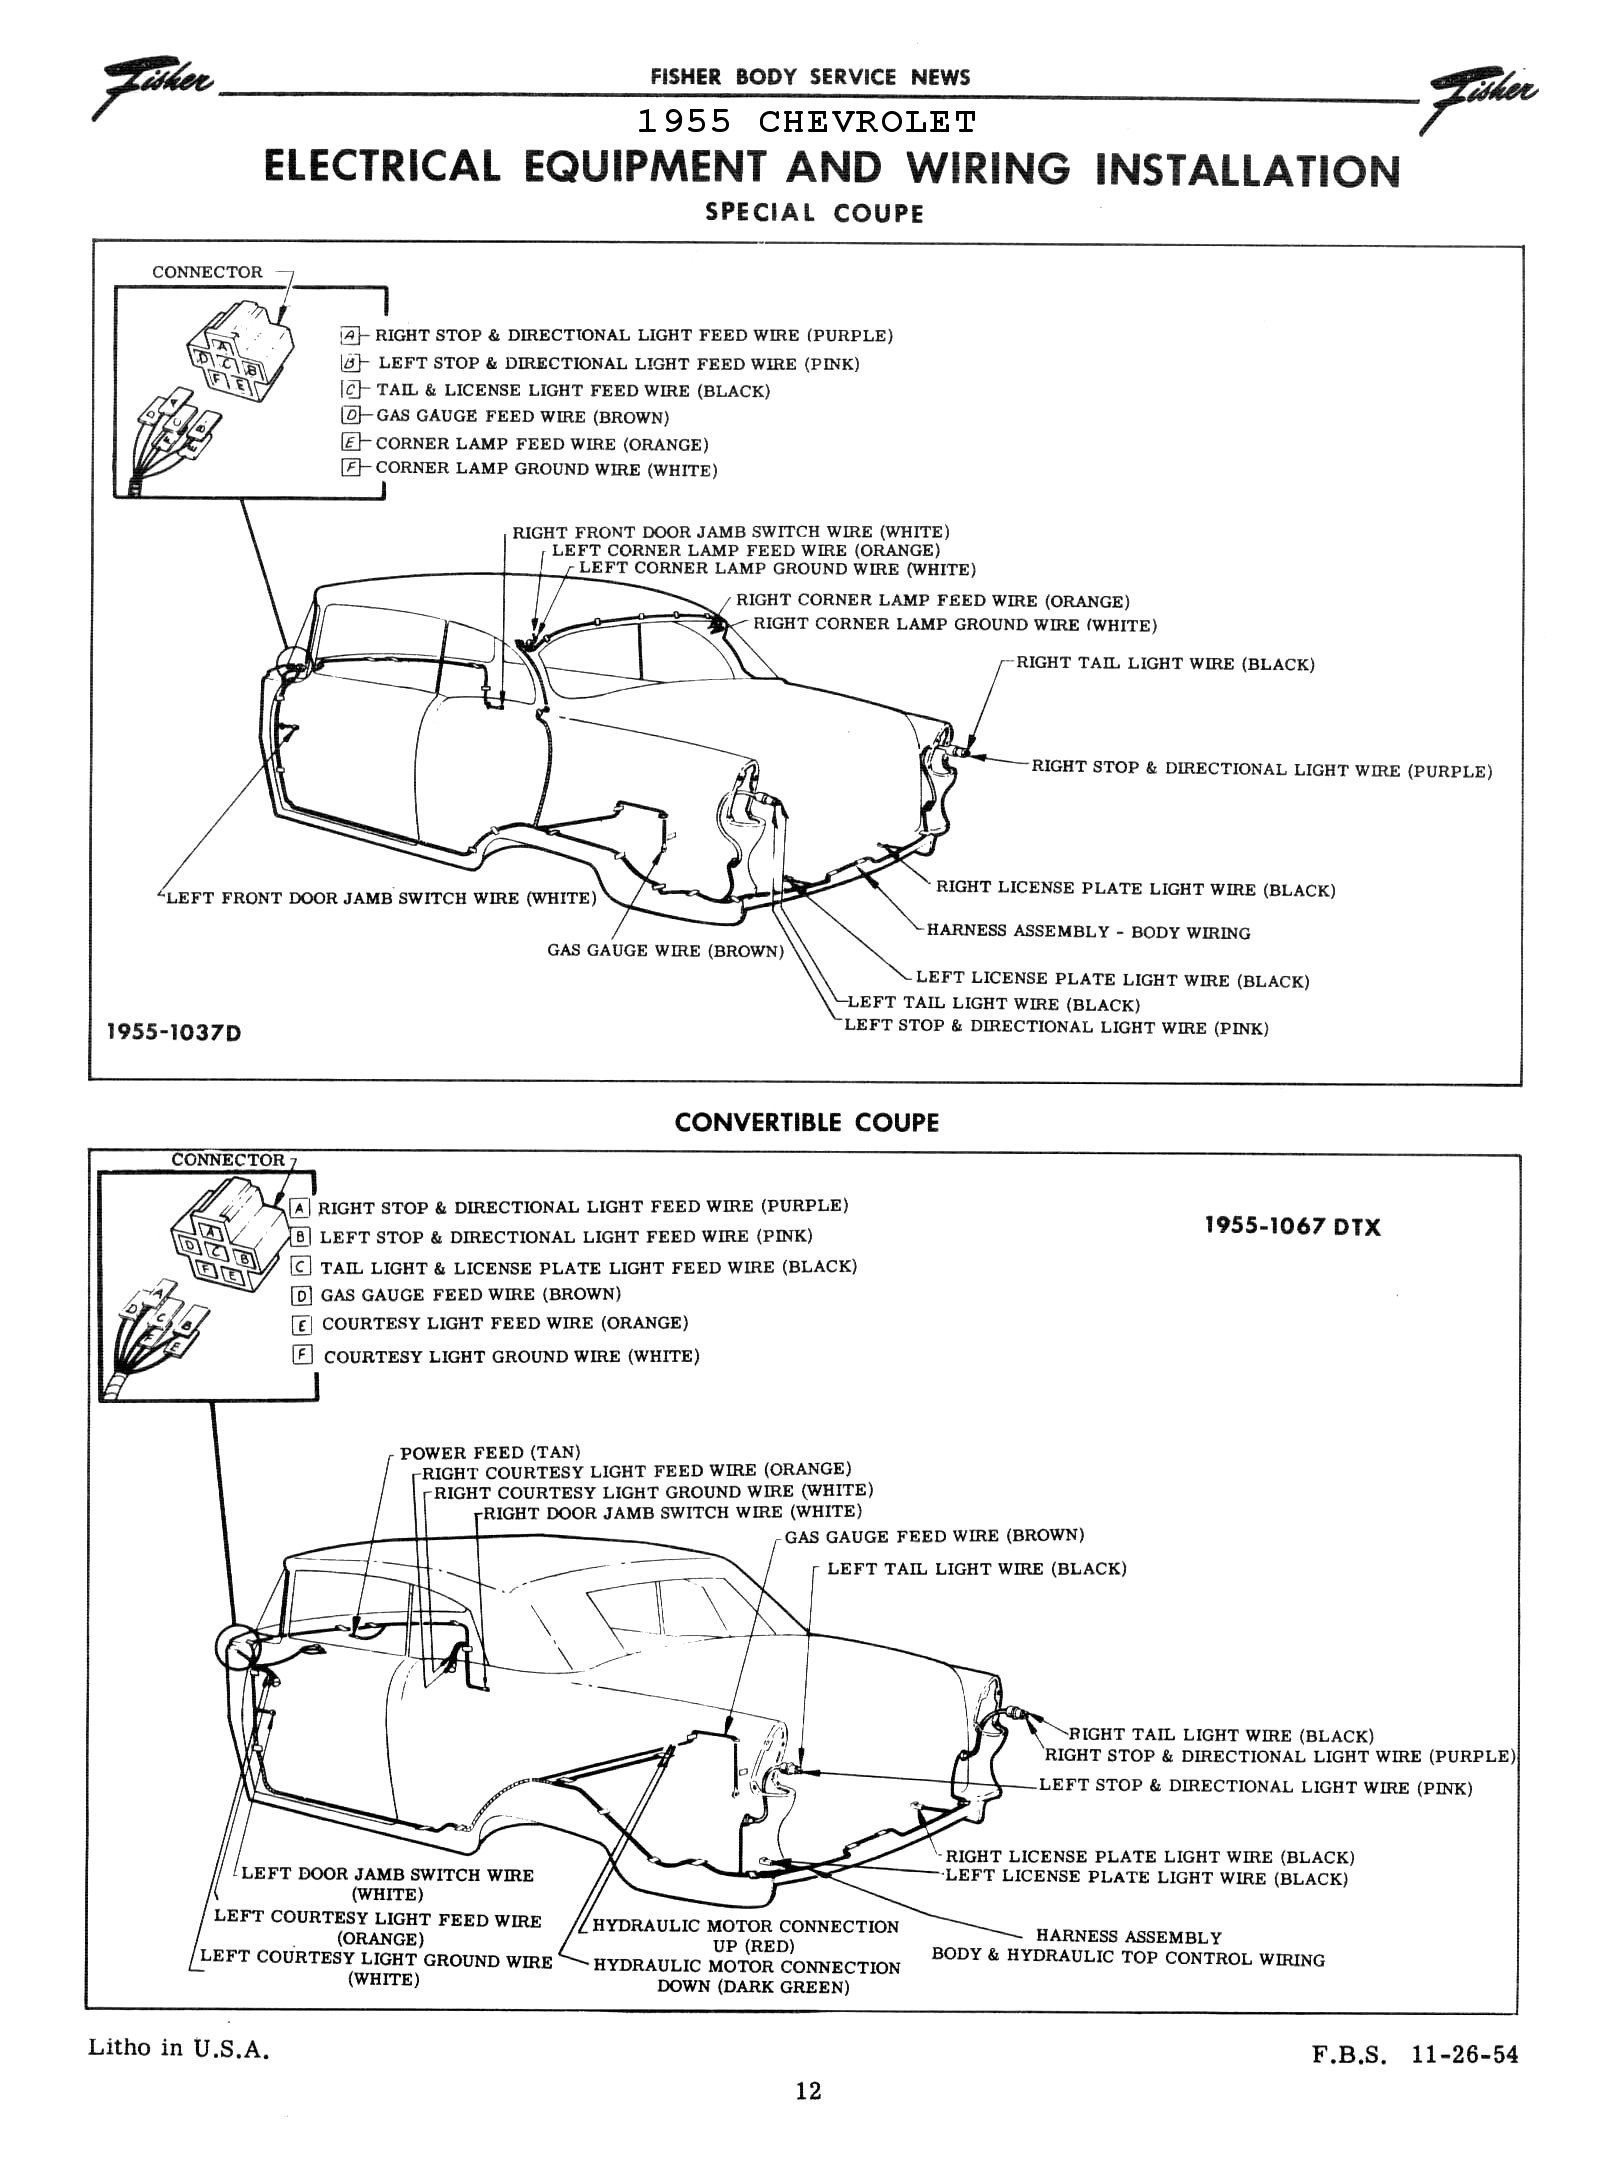 1957 chevy headlight switch wiring diagram basic electronics Universal Headlight Switch 1955 chevy wiring wiring diagrams 1957 chevy headlight switch